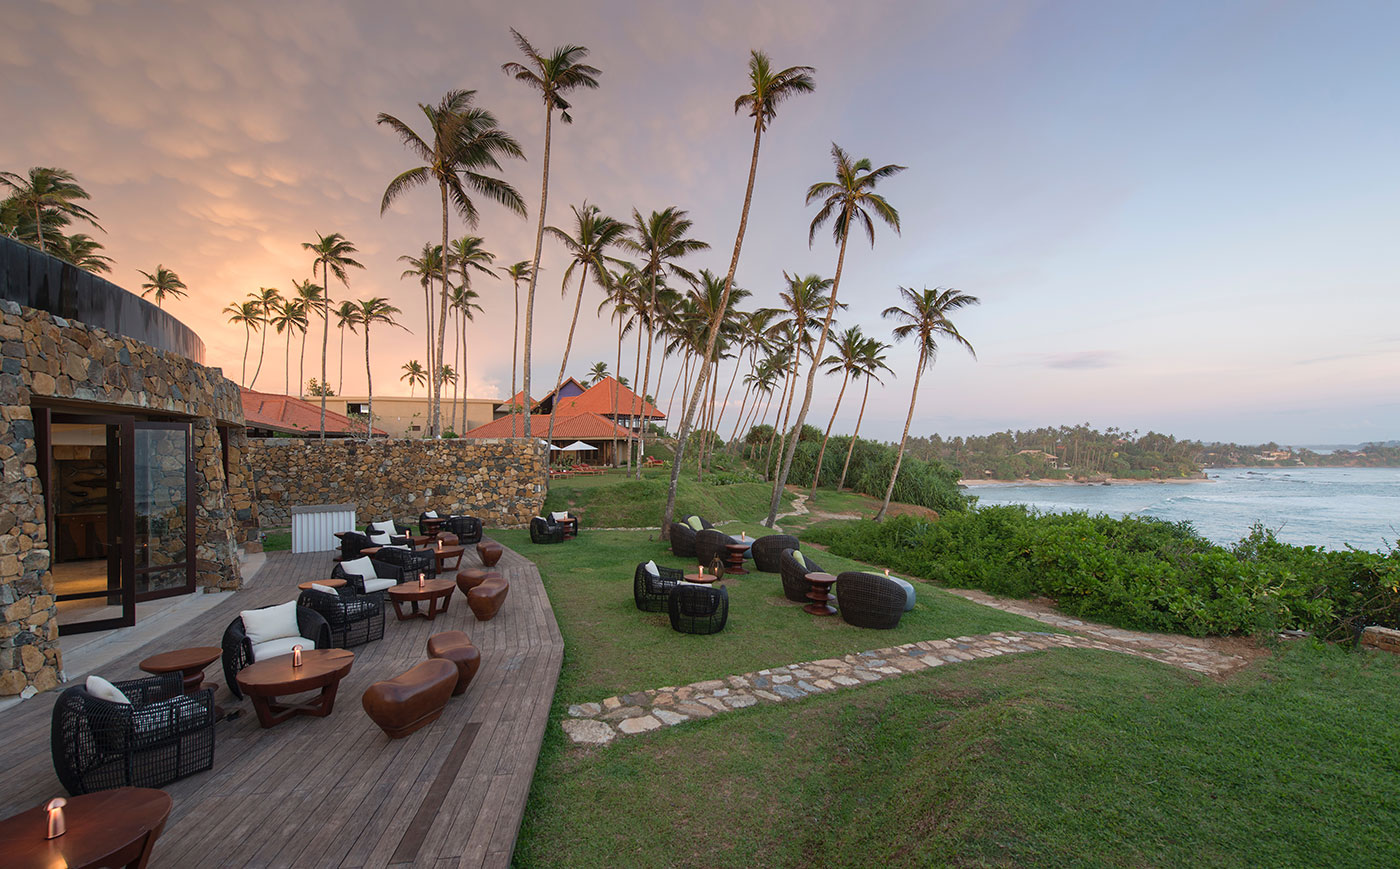 invite-to-paradise-sri-lanka-specialists-experts-travel-agent-tour-operator-cape-weligama-Moon-Bar-deck-1.jpg